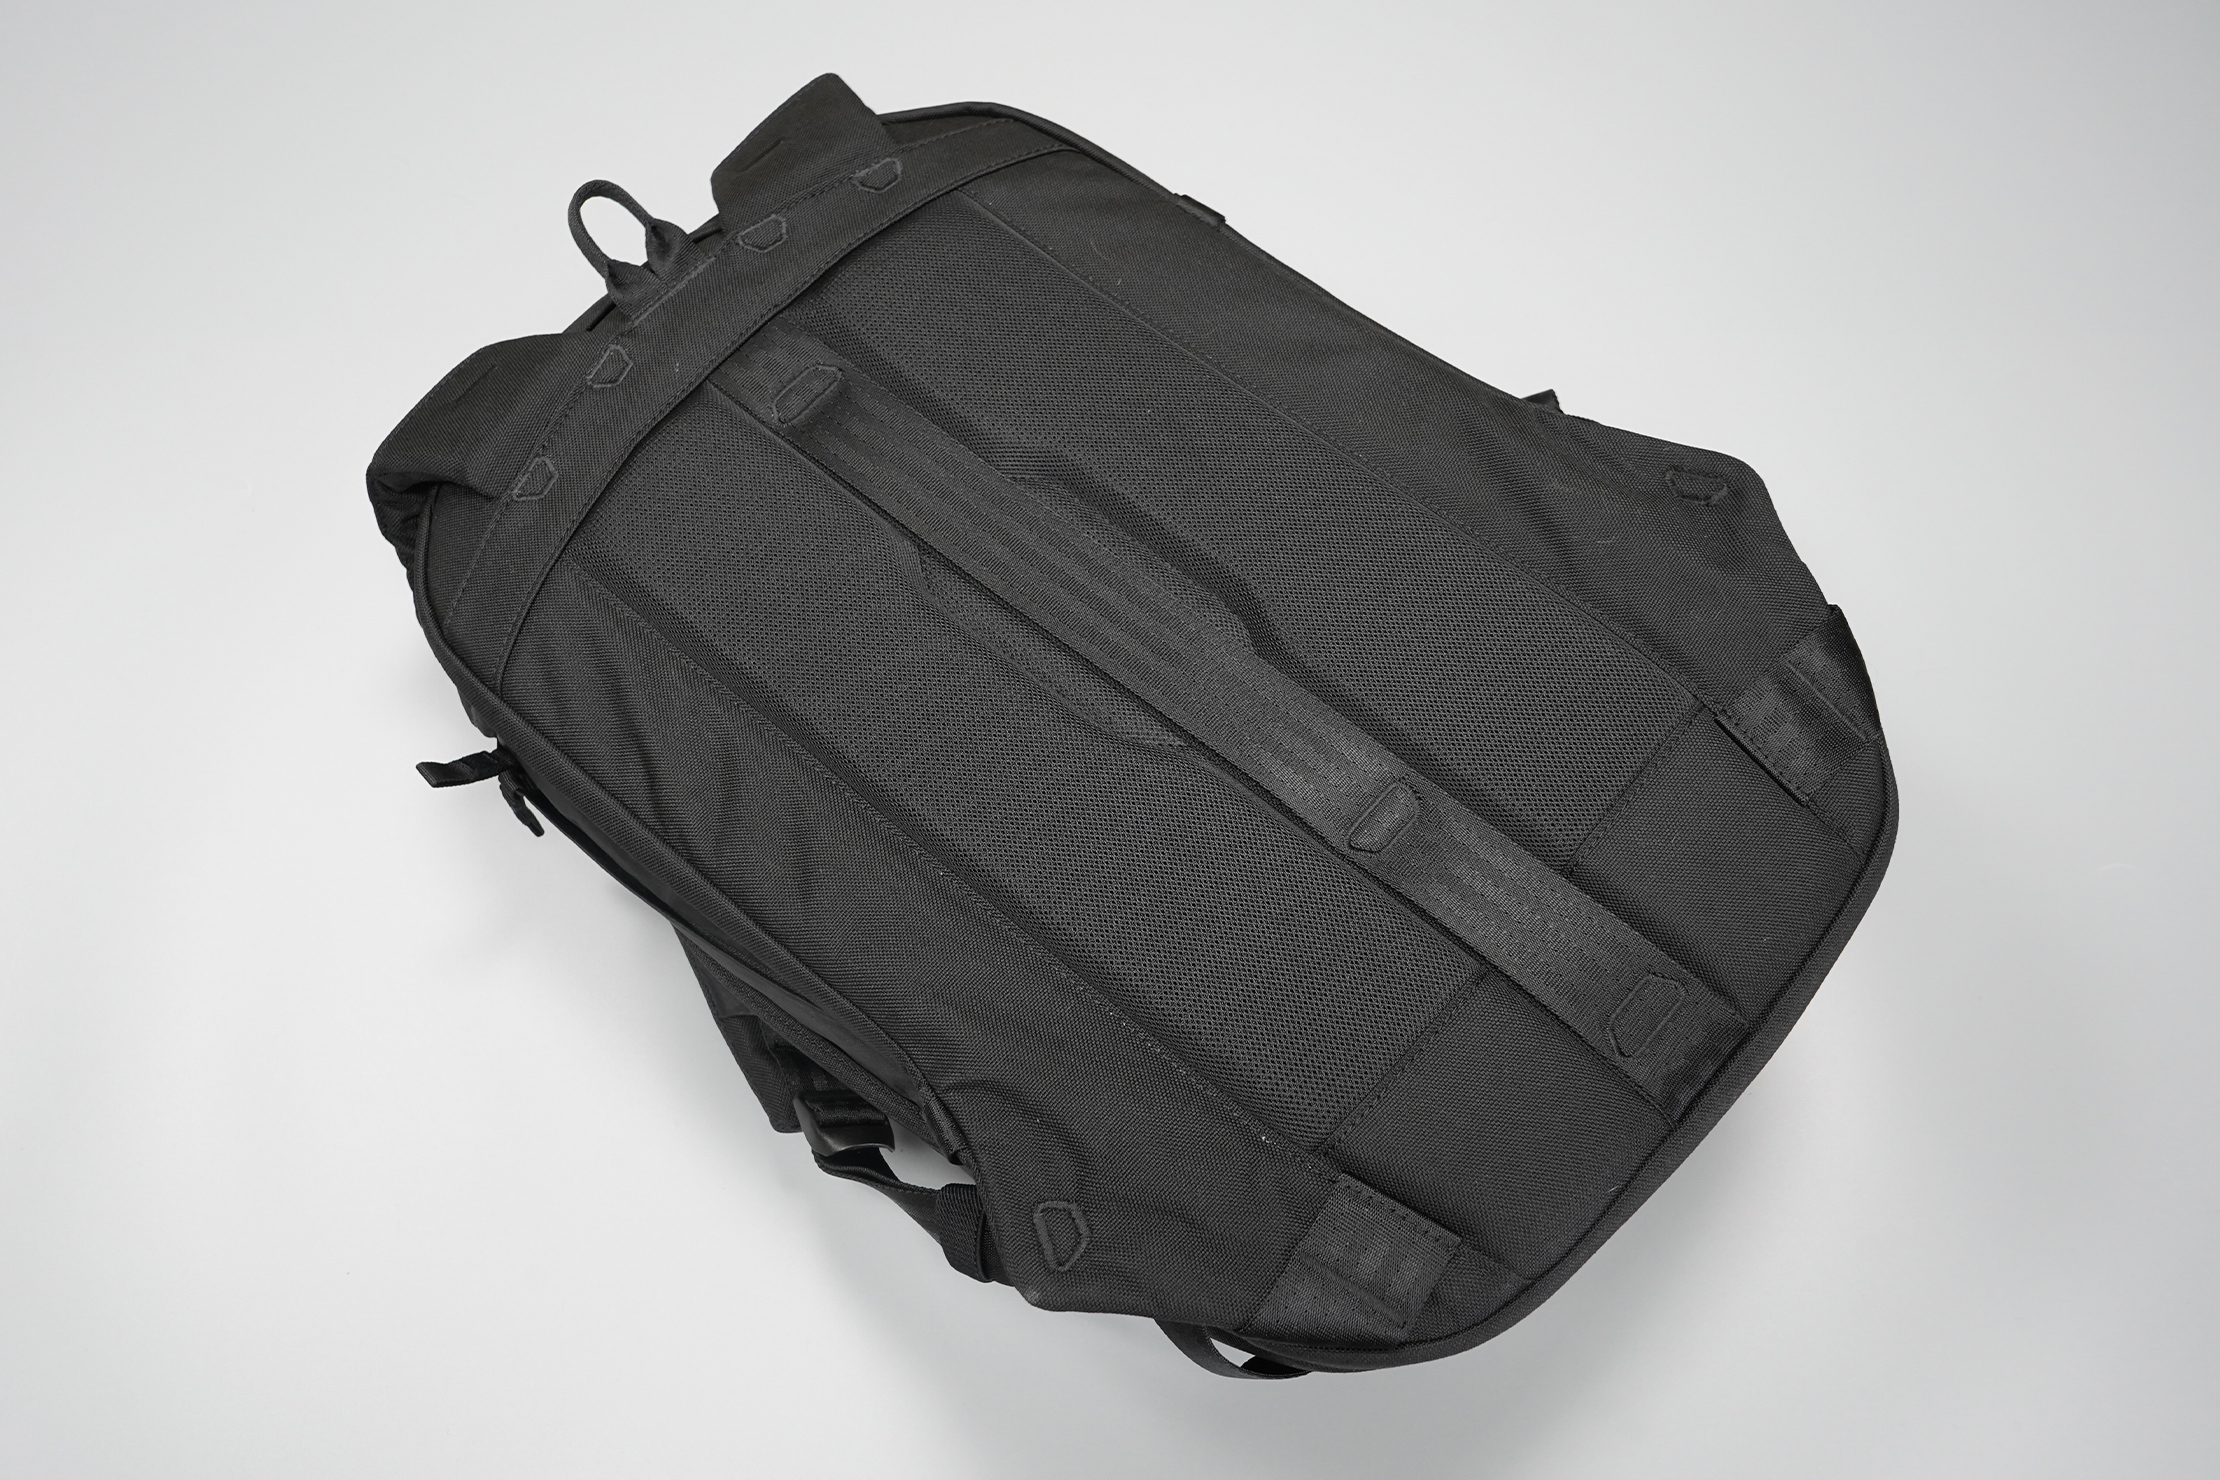 Able Carry Max Backpack | An air channel keeps things cool while housing a luggage pass-through